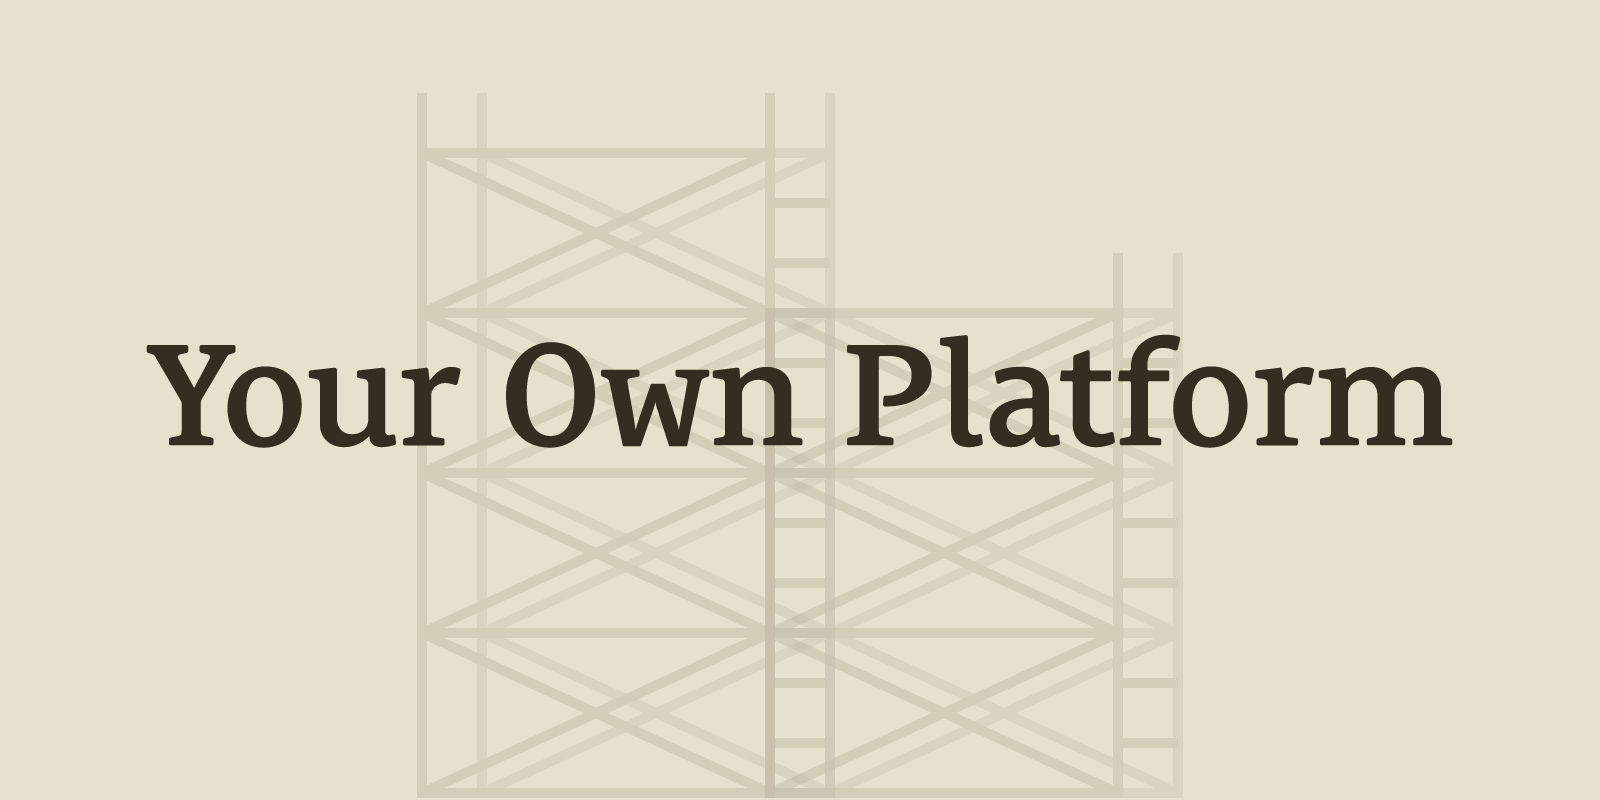 There's No Substitute For Your Own Platform